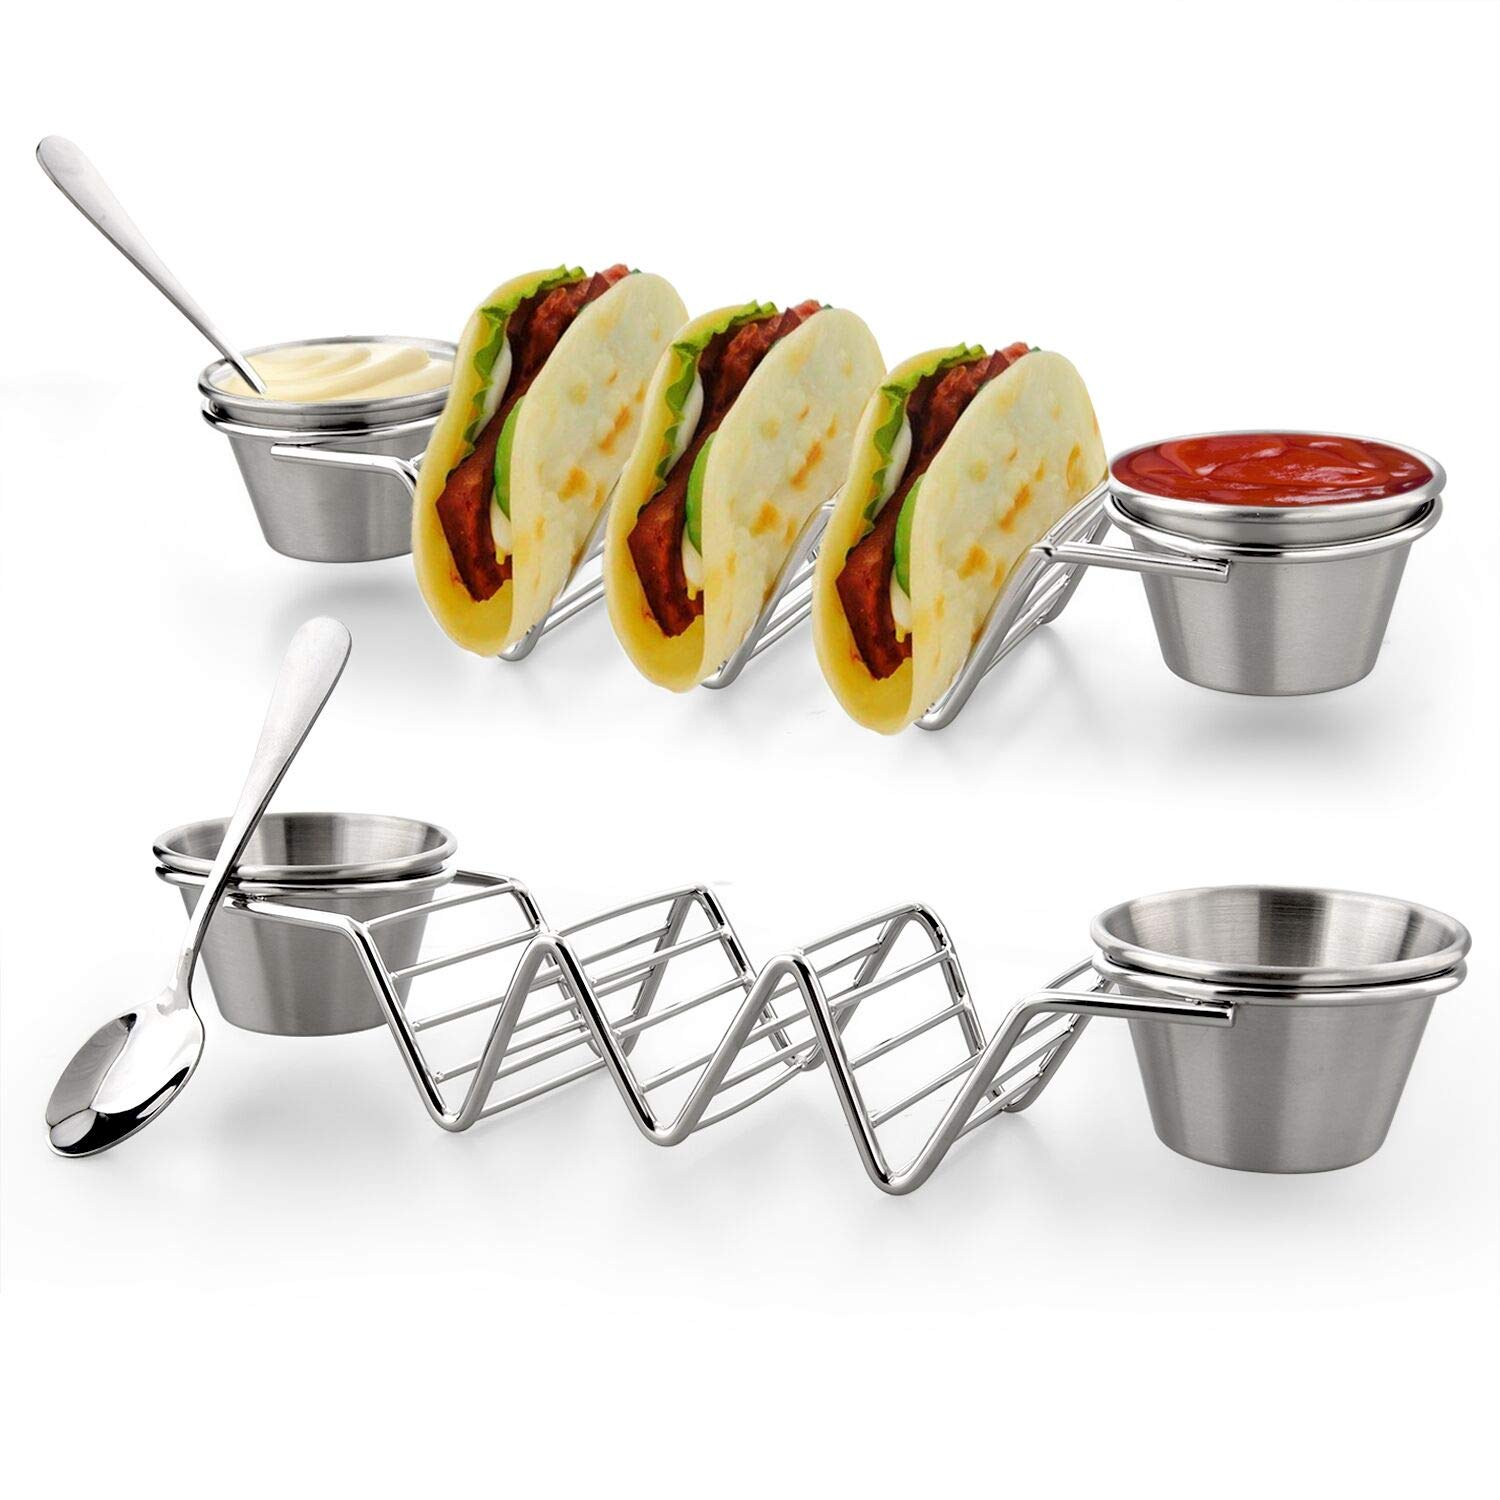 Upgrade Taco Shell Stand Up Holders-2 Pack Premium Stainless Steel Taco Holder with 4 Salad Cups & 2 Spoons,Holds 3 Tacos Each Keeping Shells Upright & Neat